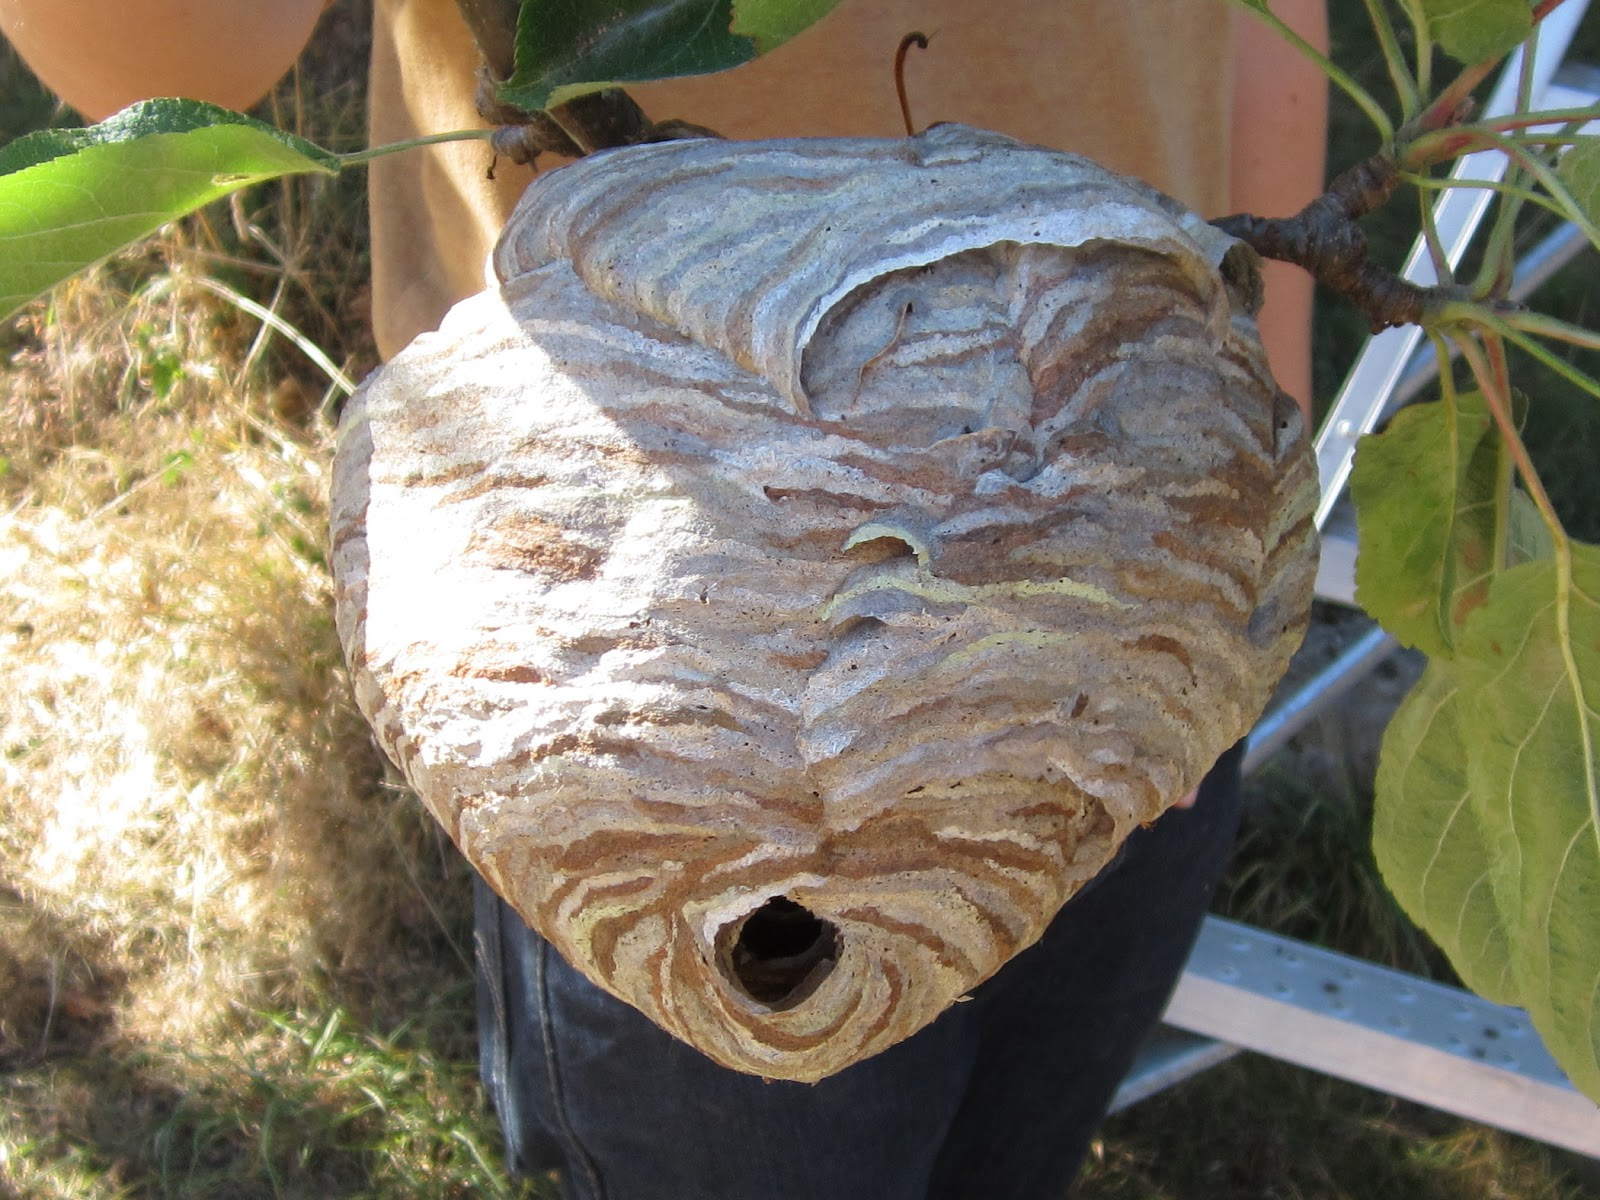 Hornets Nest vs Garden Hose Dont Try This At Home